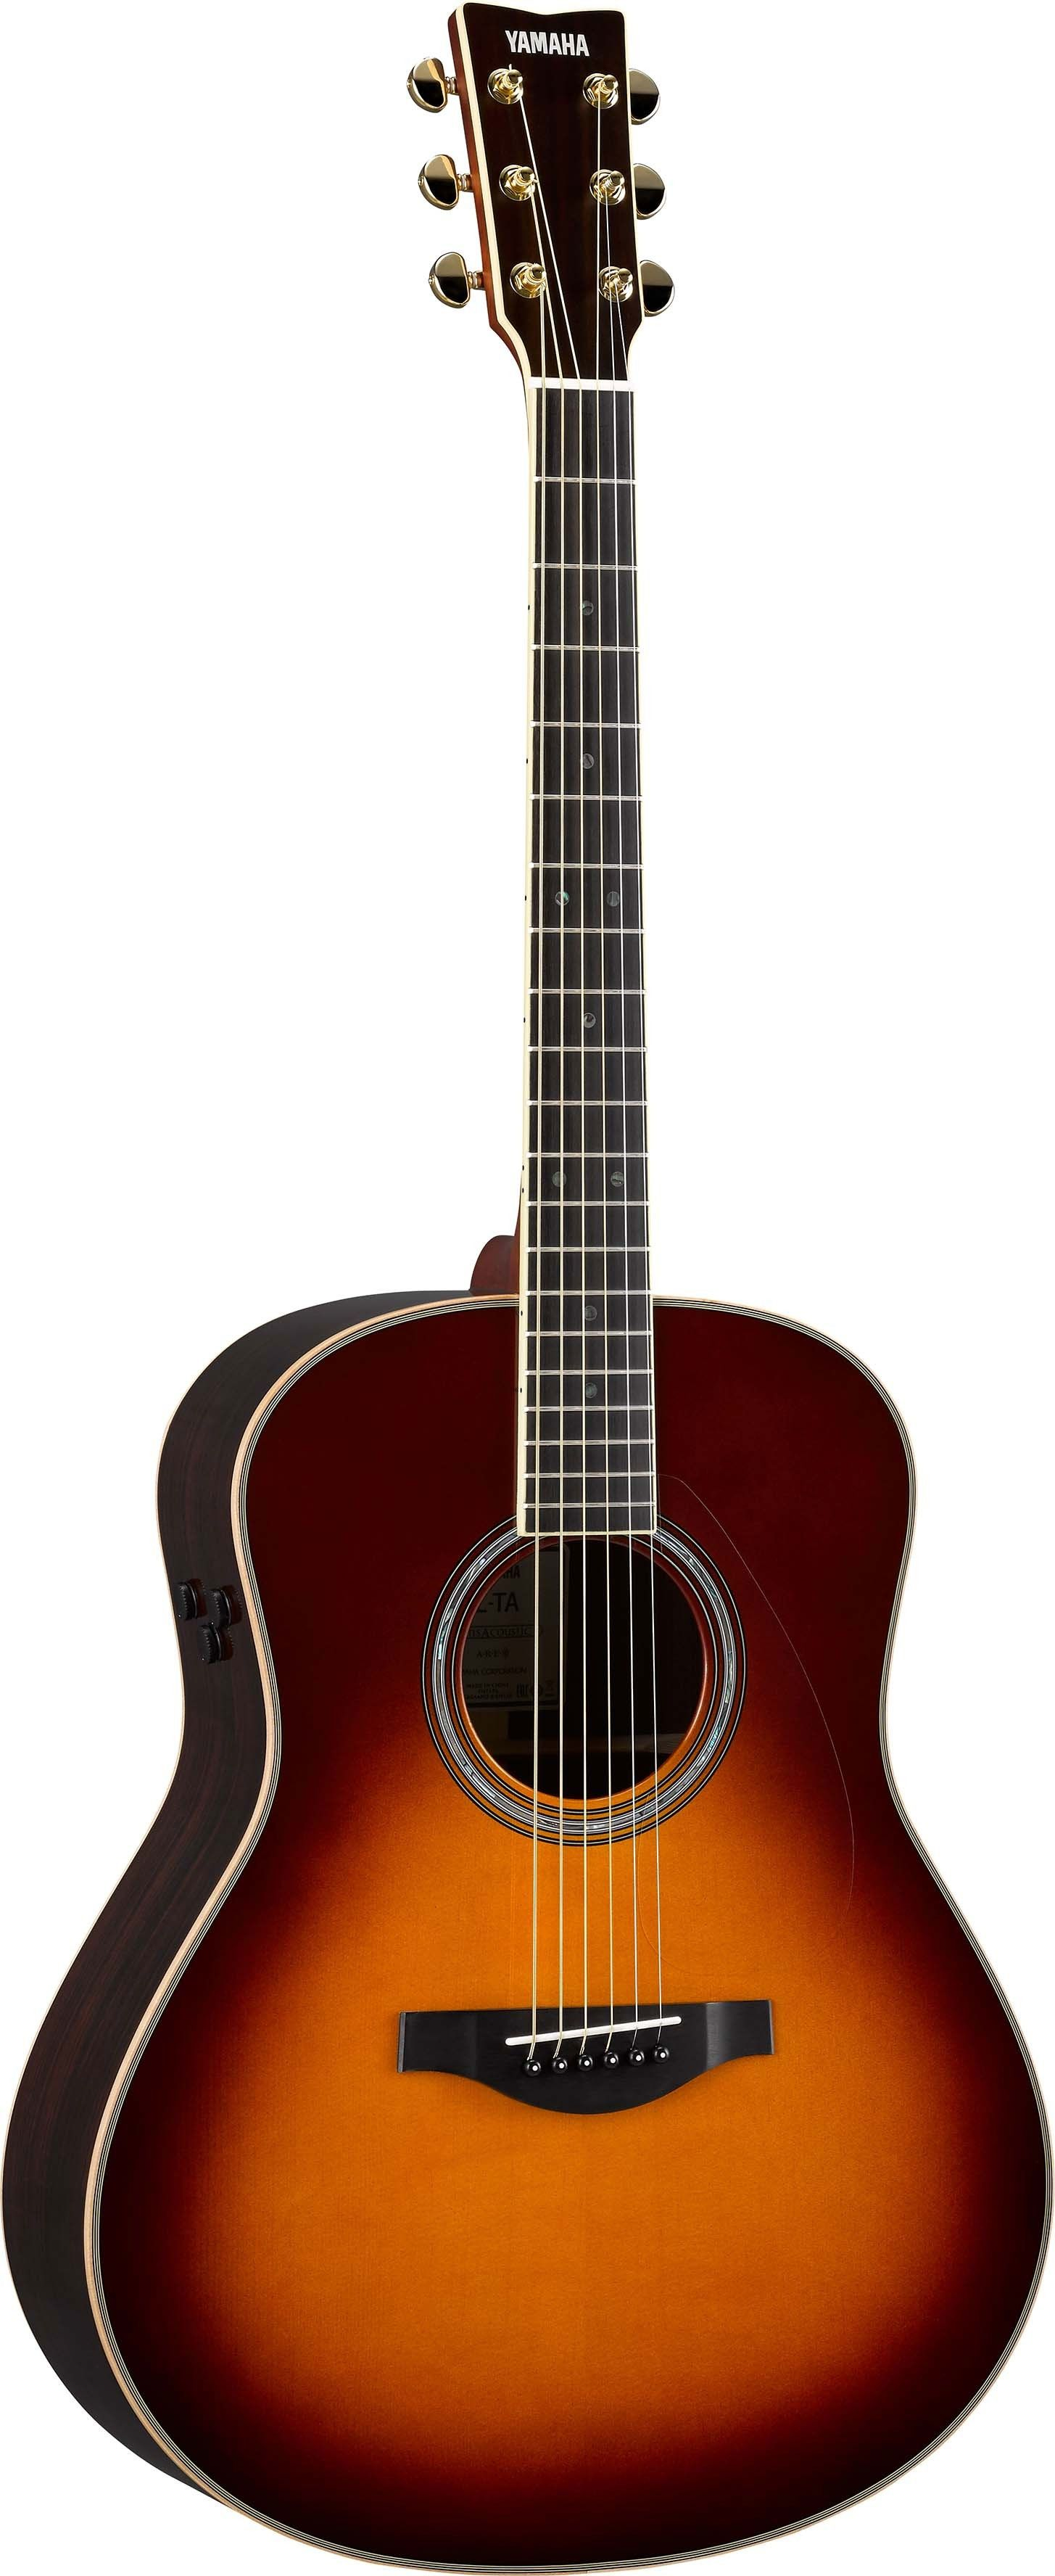 Ll Ta Transacoustic Guitars Yamaha Play Listen Be Inspired There S Nothing So Inspiring As Playing Guitar In A Great Sounding Room It Makes You Play B